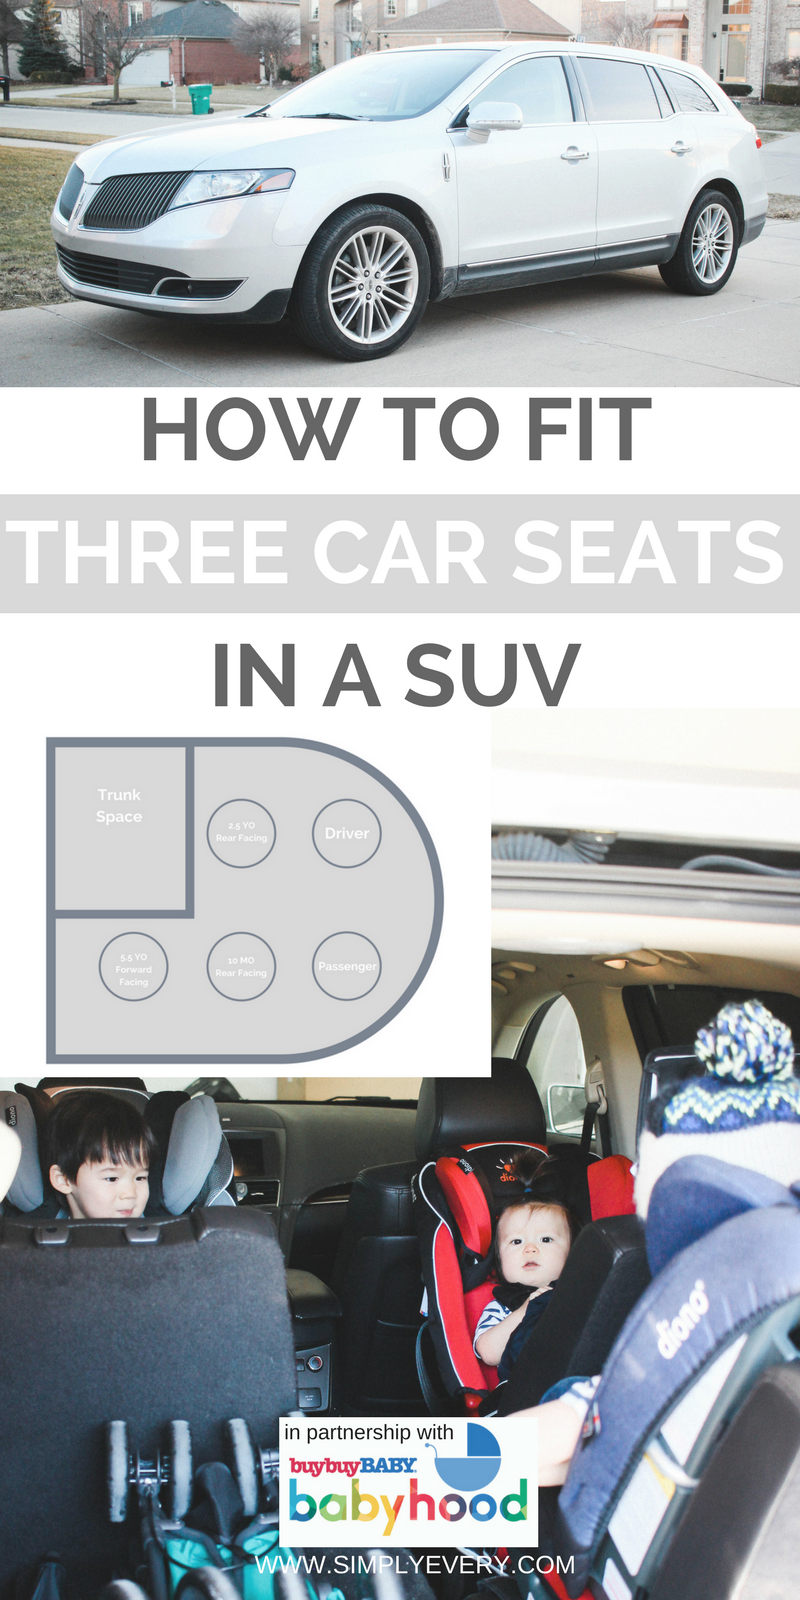 How to Fit Three Car Seats in a SUV